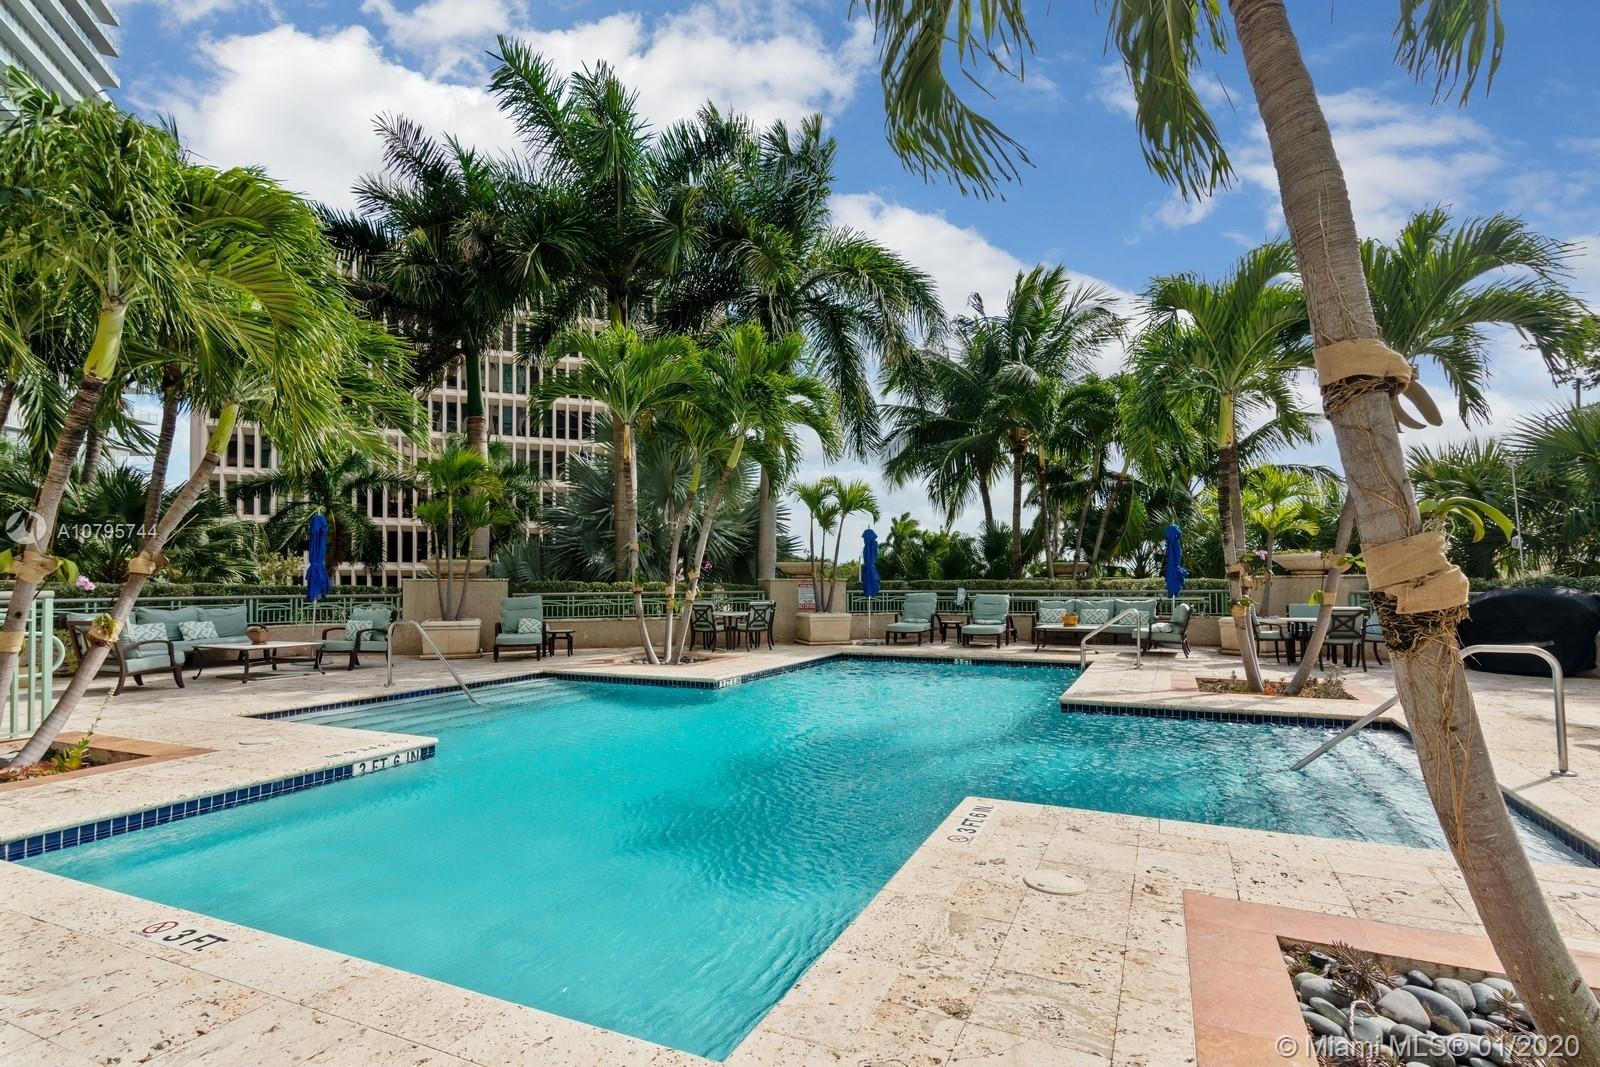 Your opportunity to own at the Elegant and Classic Ritz-Carlton Tower Residences Coconut Grove which